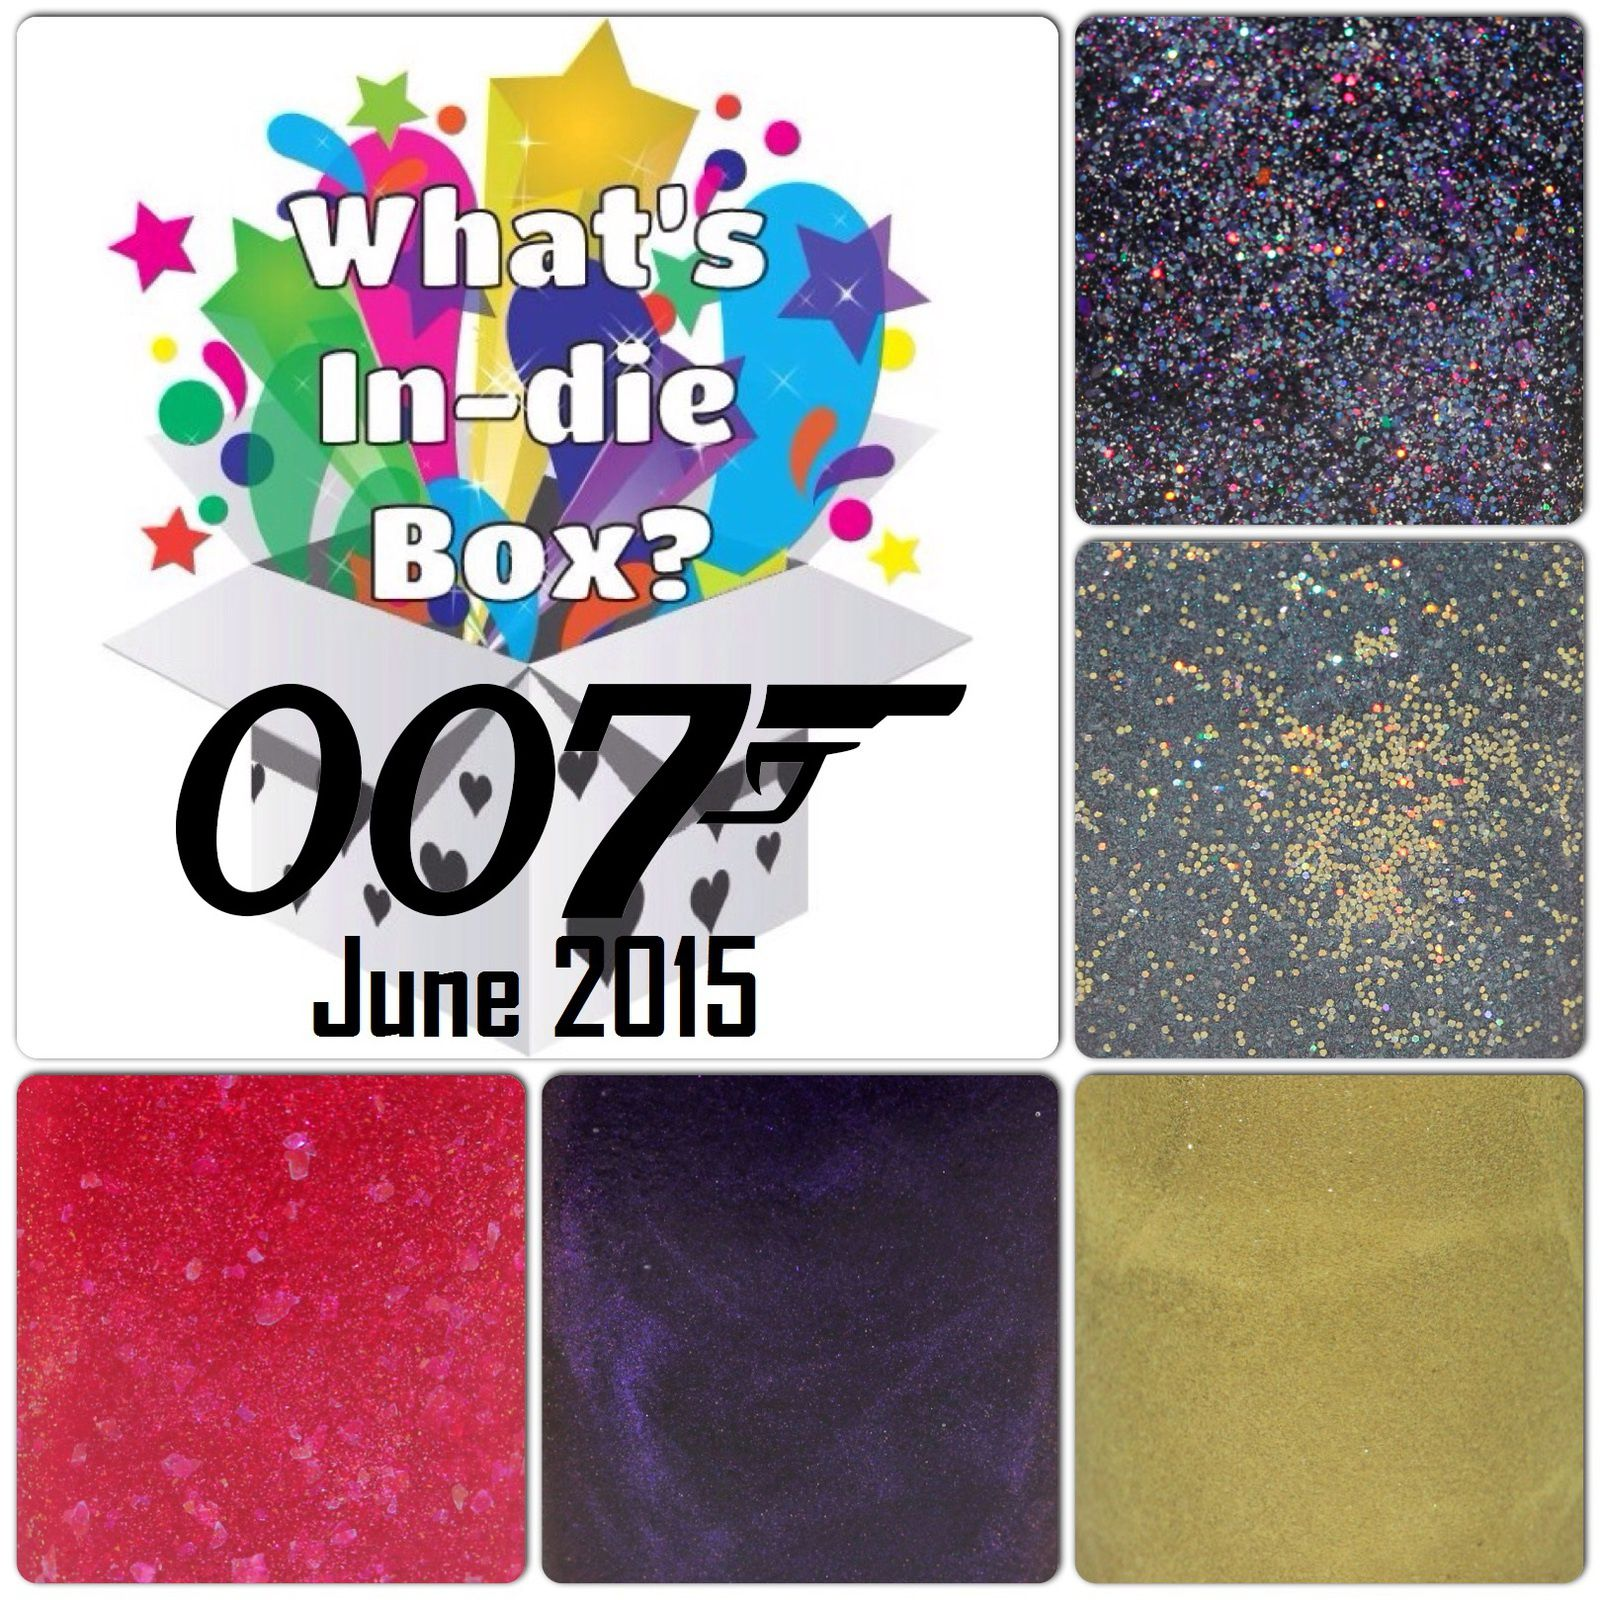 What's Indie Box - June 2015 - James Bond Movies